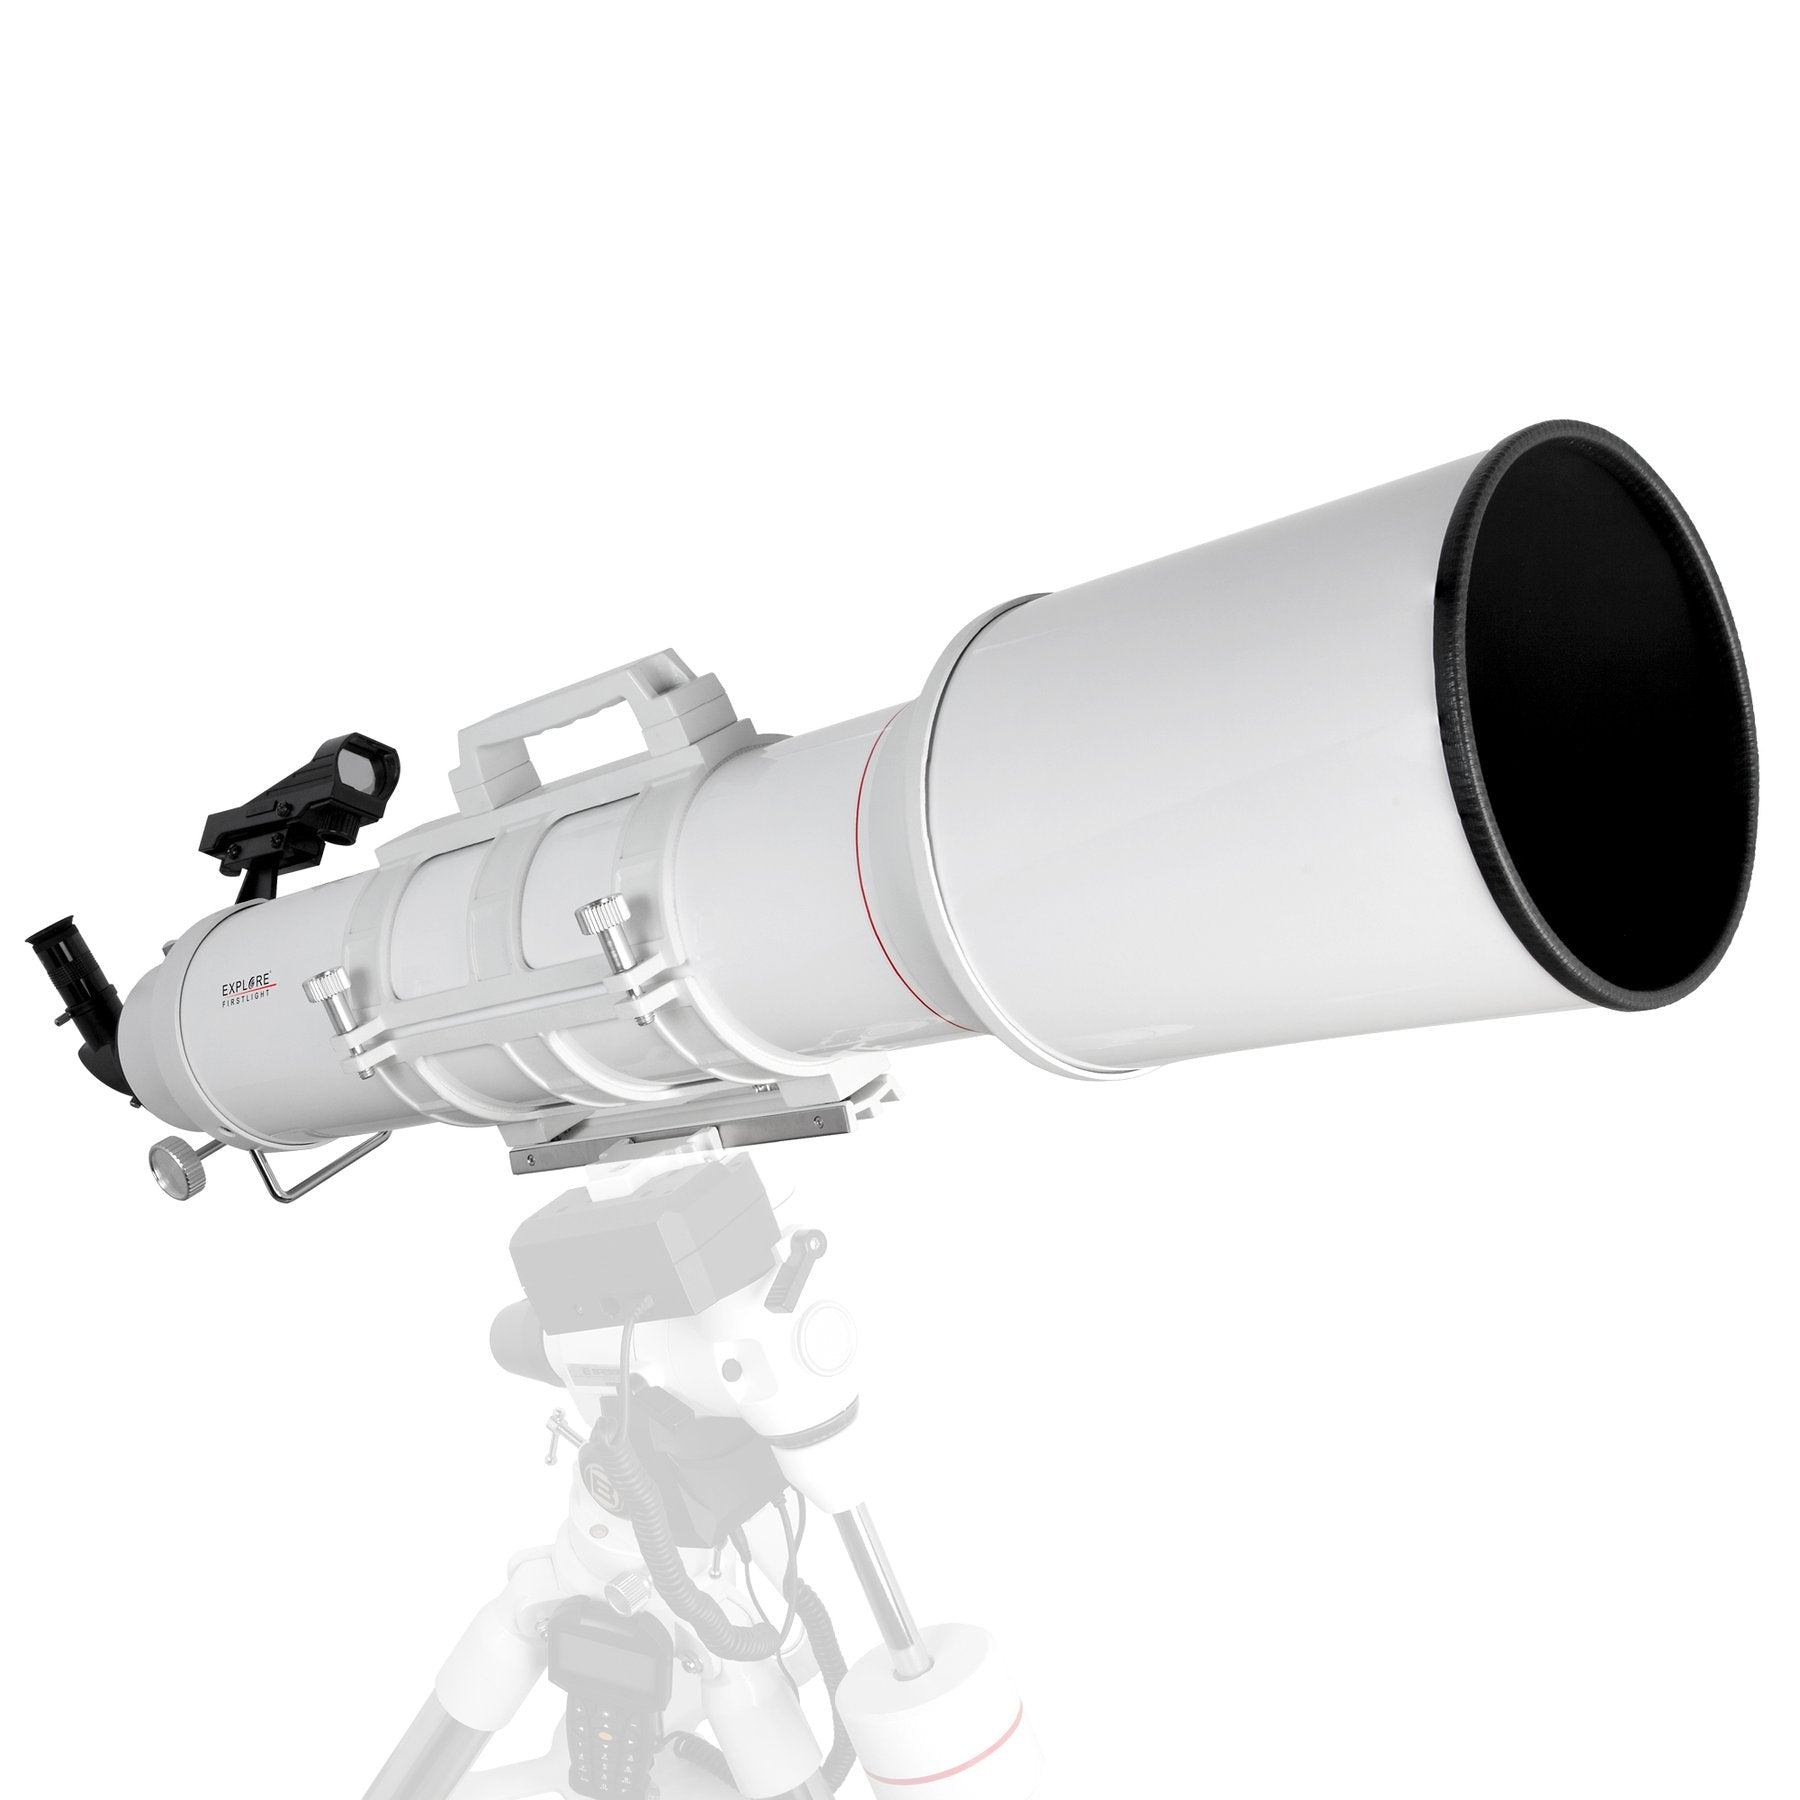 Explore FirstLight 152mm Doublet Refractor Telescope - Optical Tube Only